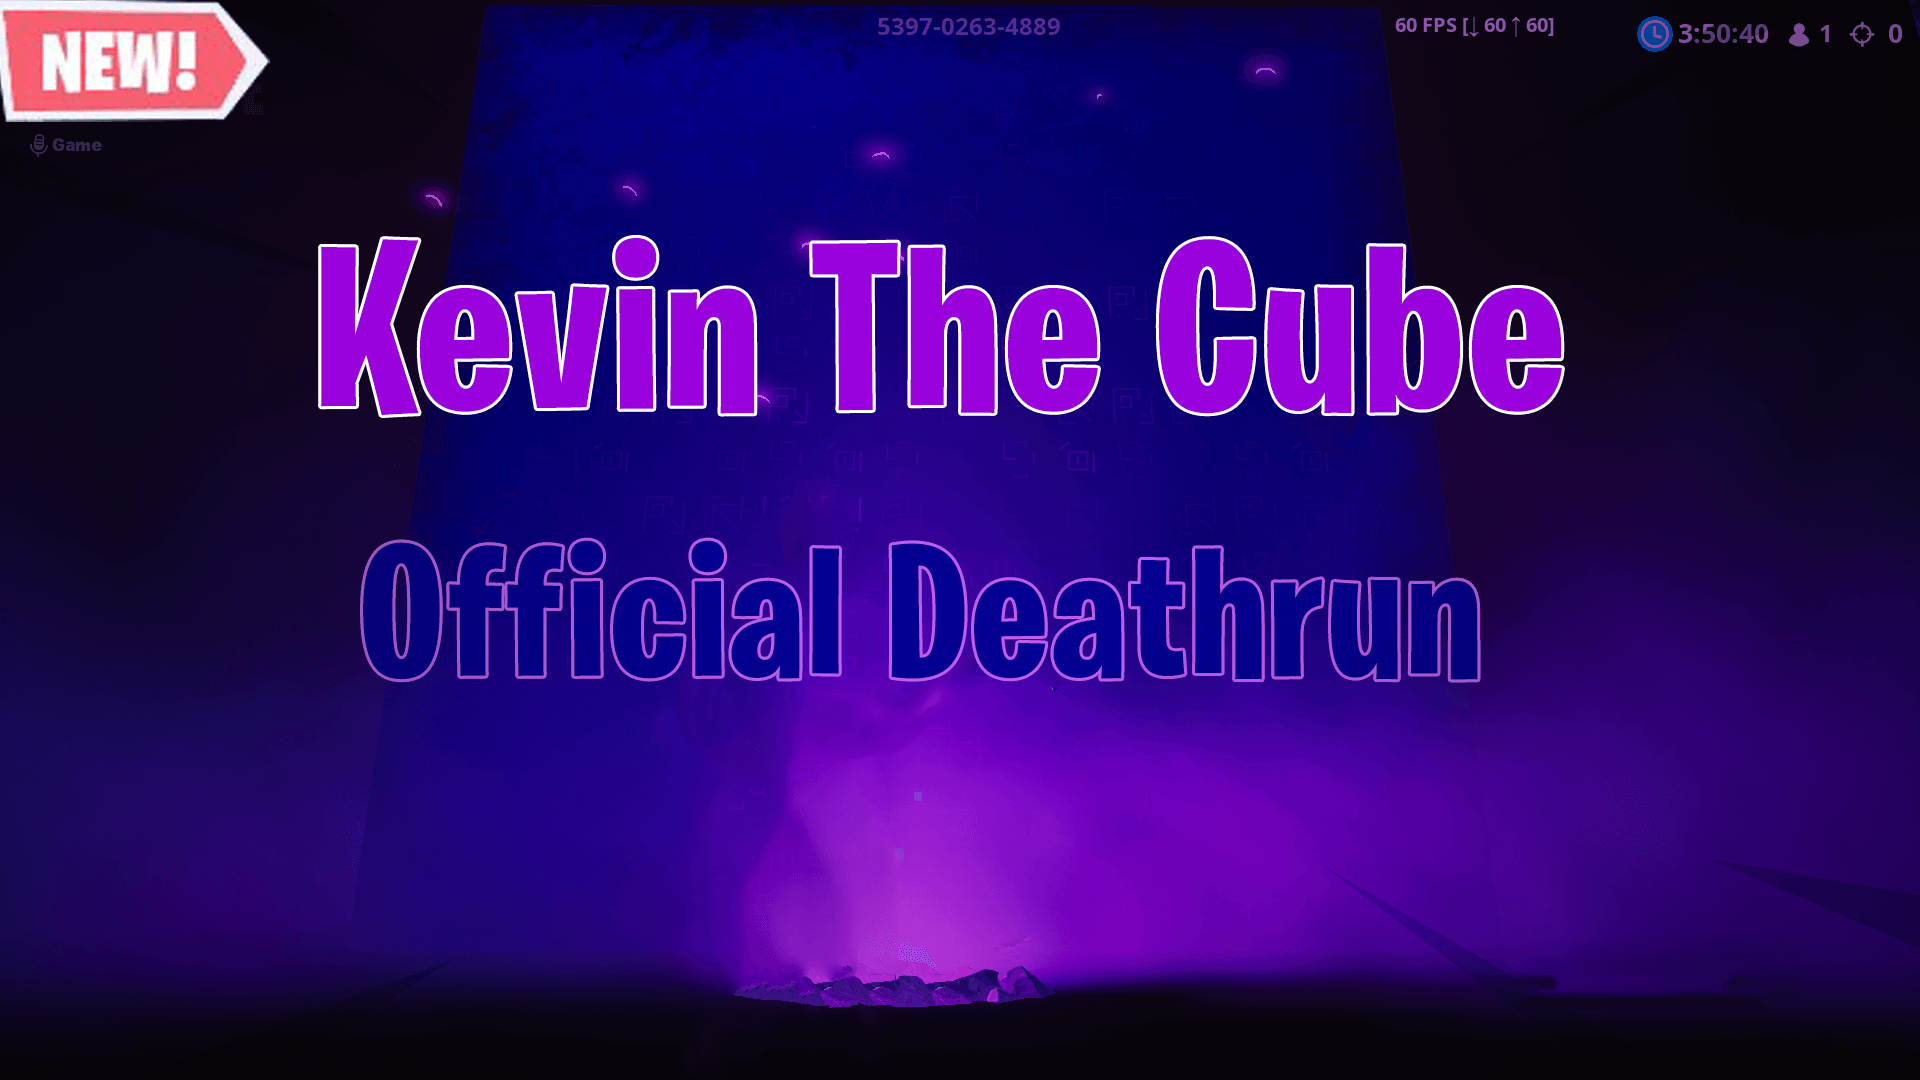 KEVIN THE CUBE OFFICIAL DEATHRUN